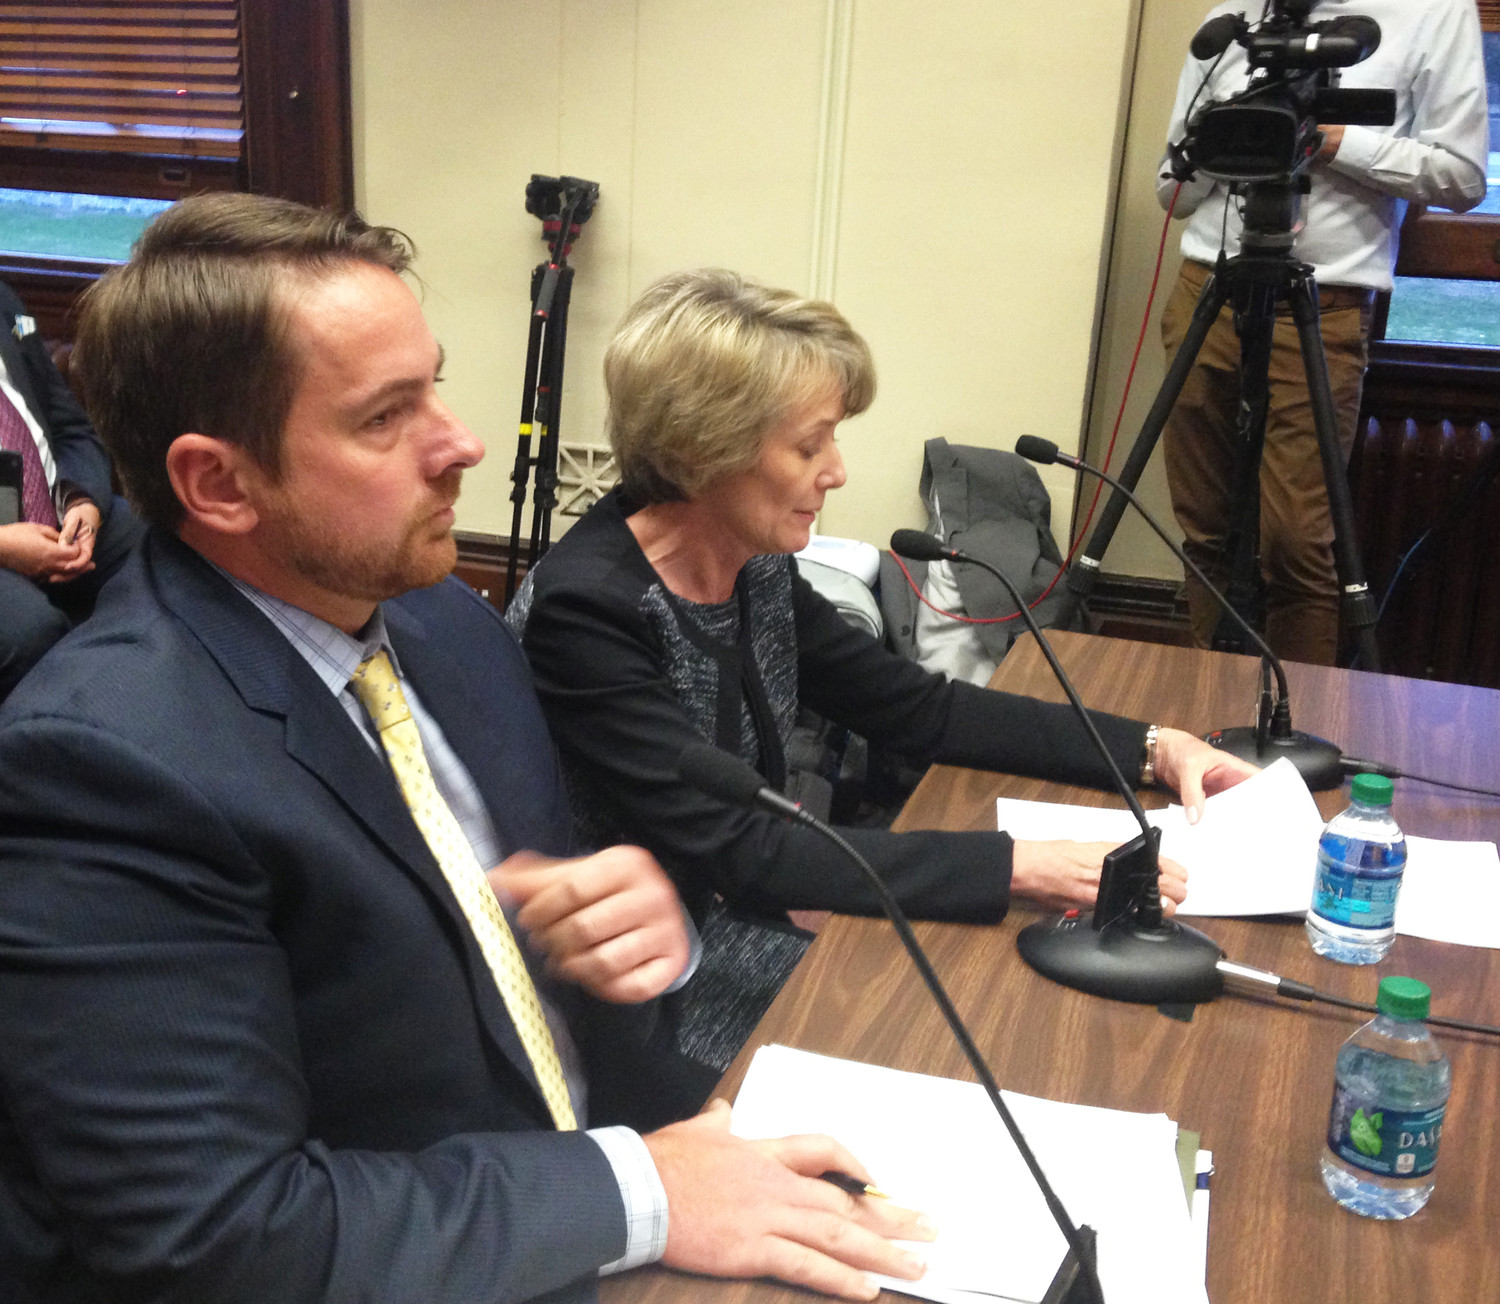 Kenny Smith, left, and Deborah Sills of Deloitte Consulting testify before the House Committee on Oversight on April 12.